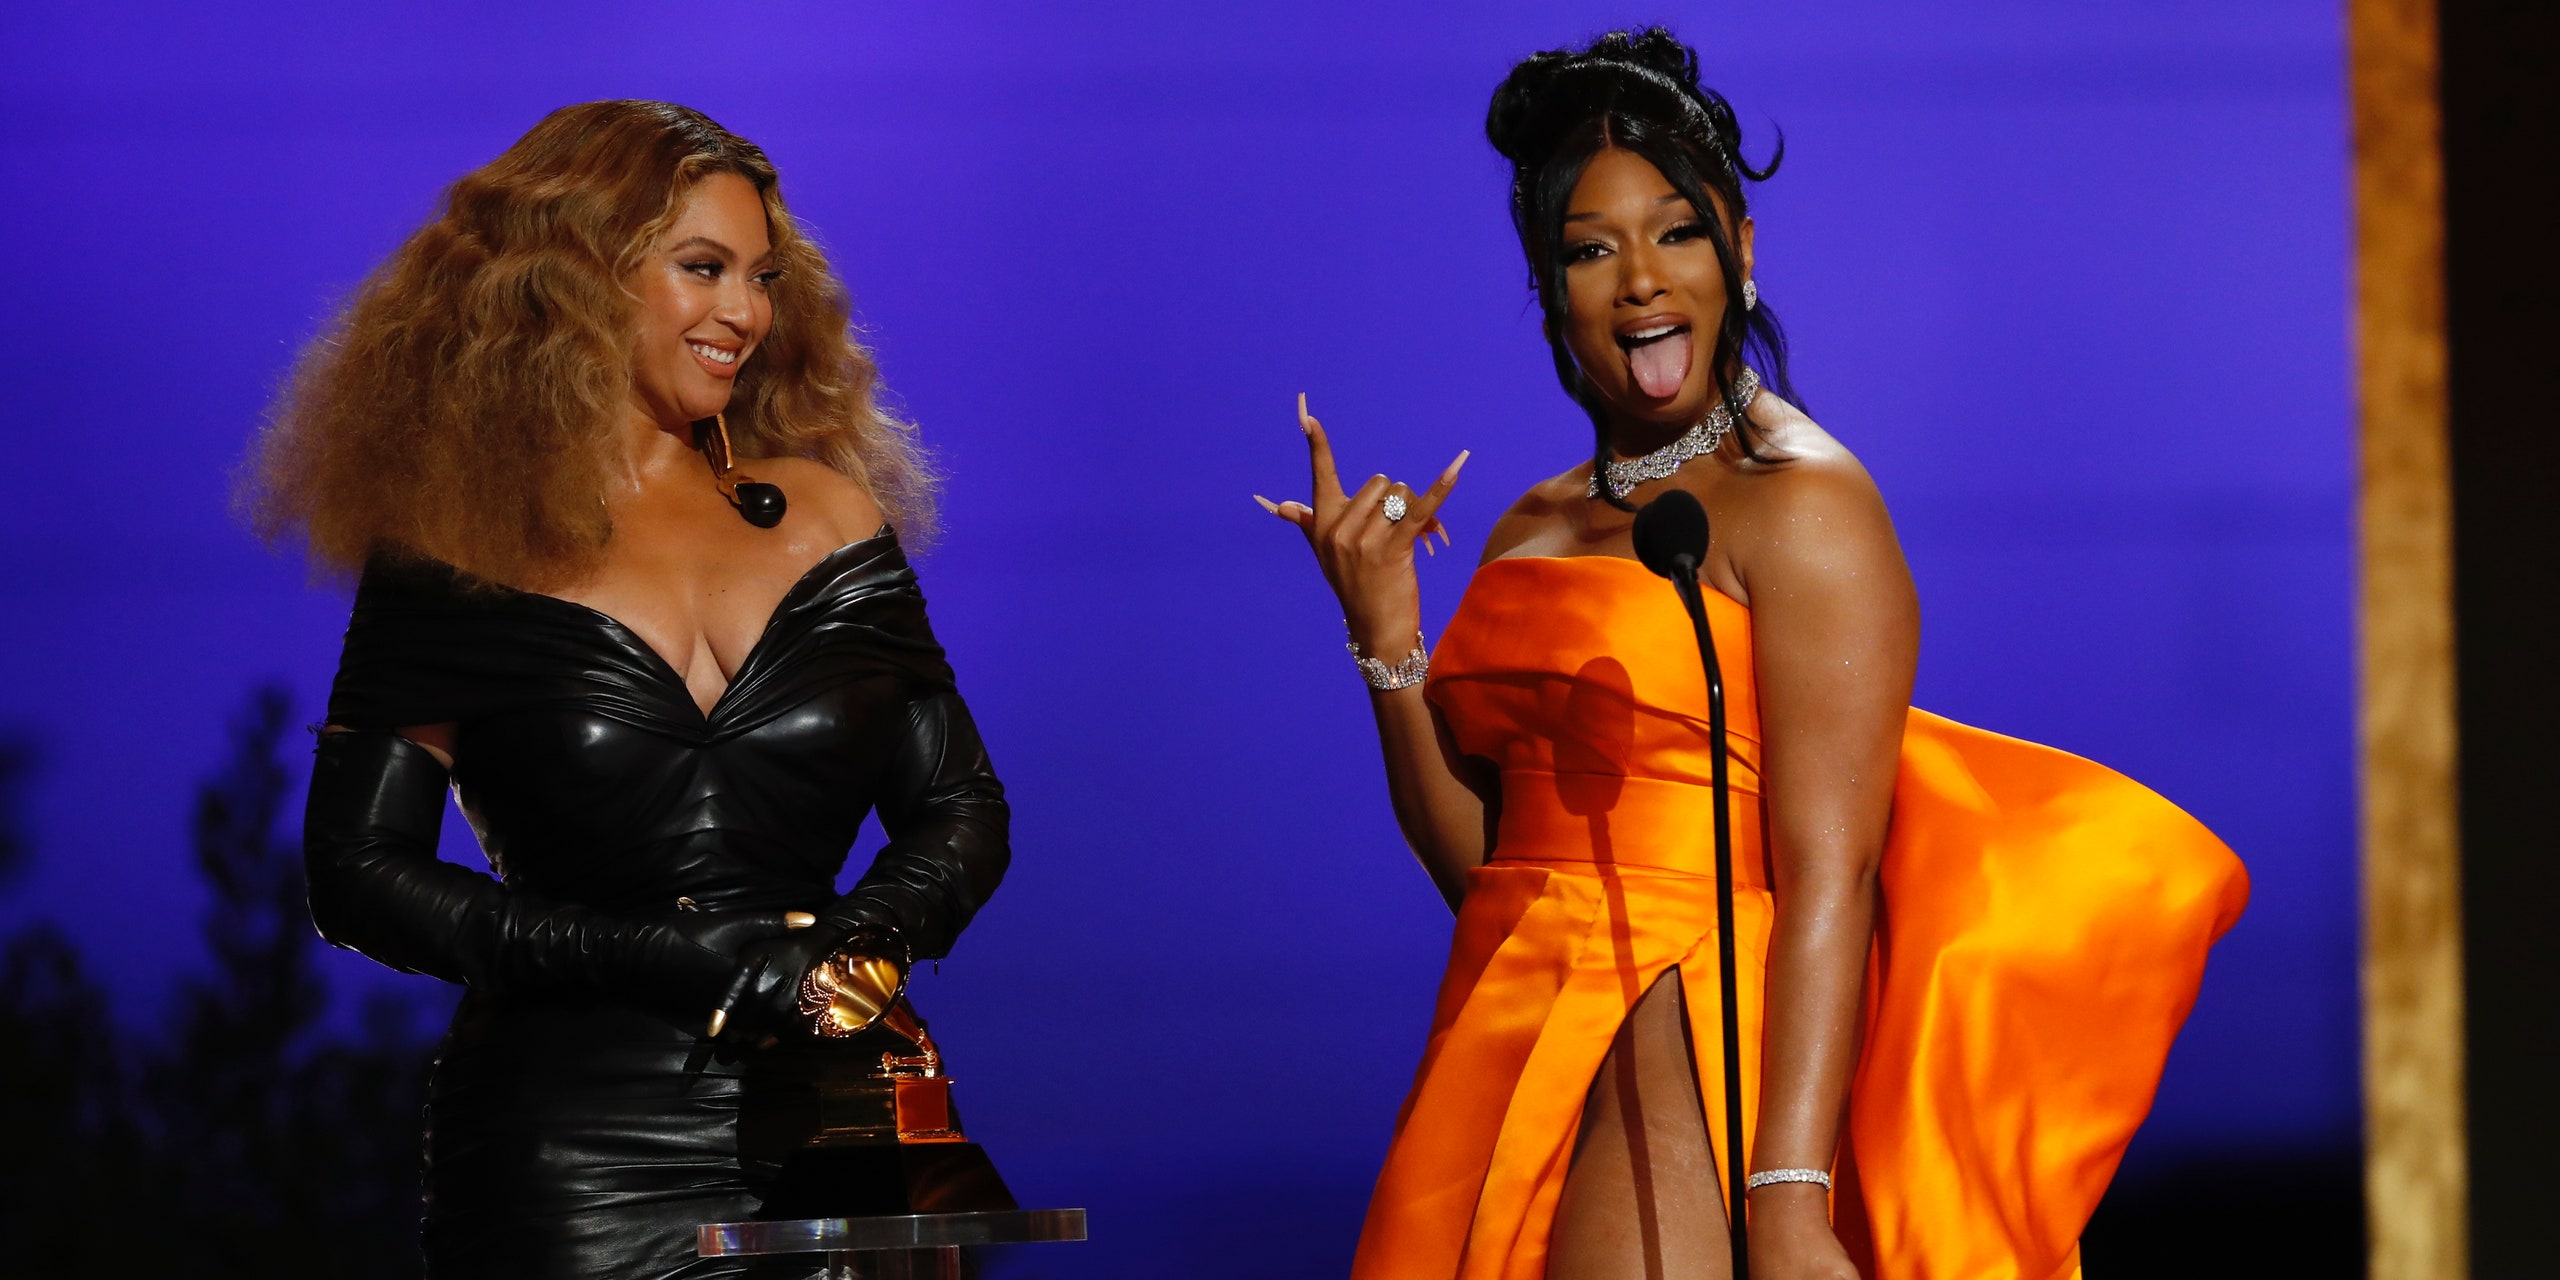 Rapper Megan Thee Stallion and Beyonce